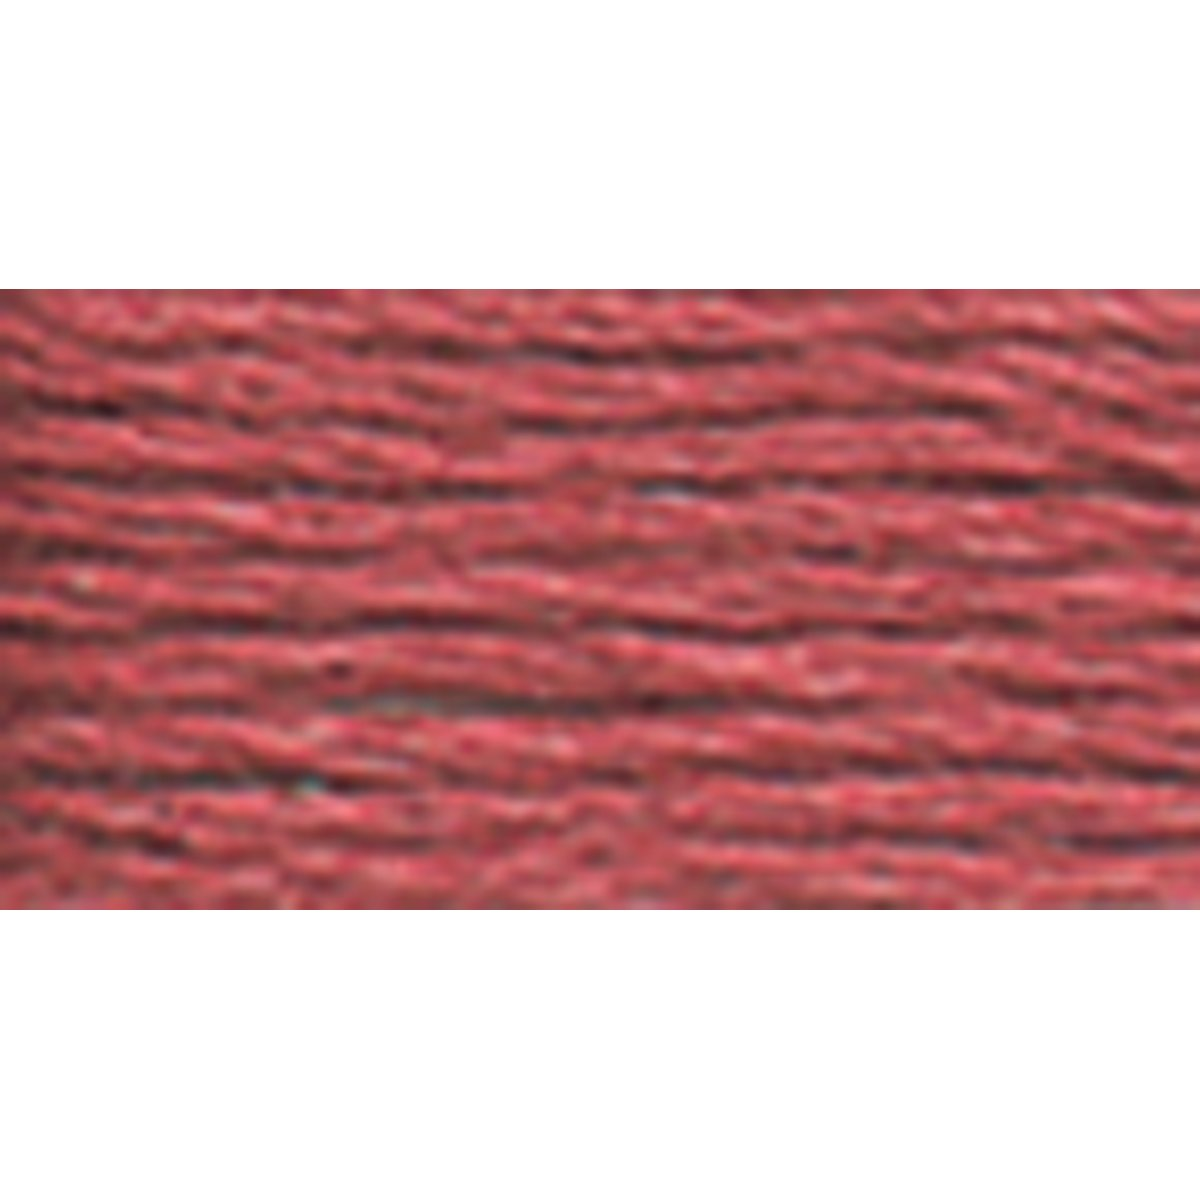 DMC 117-3722 Mouline Stranded Cotton Six Strand Embroidery Floss Thread, Medium Shell Pink, 8.7-Yard Notions - In Network